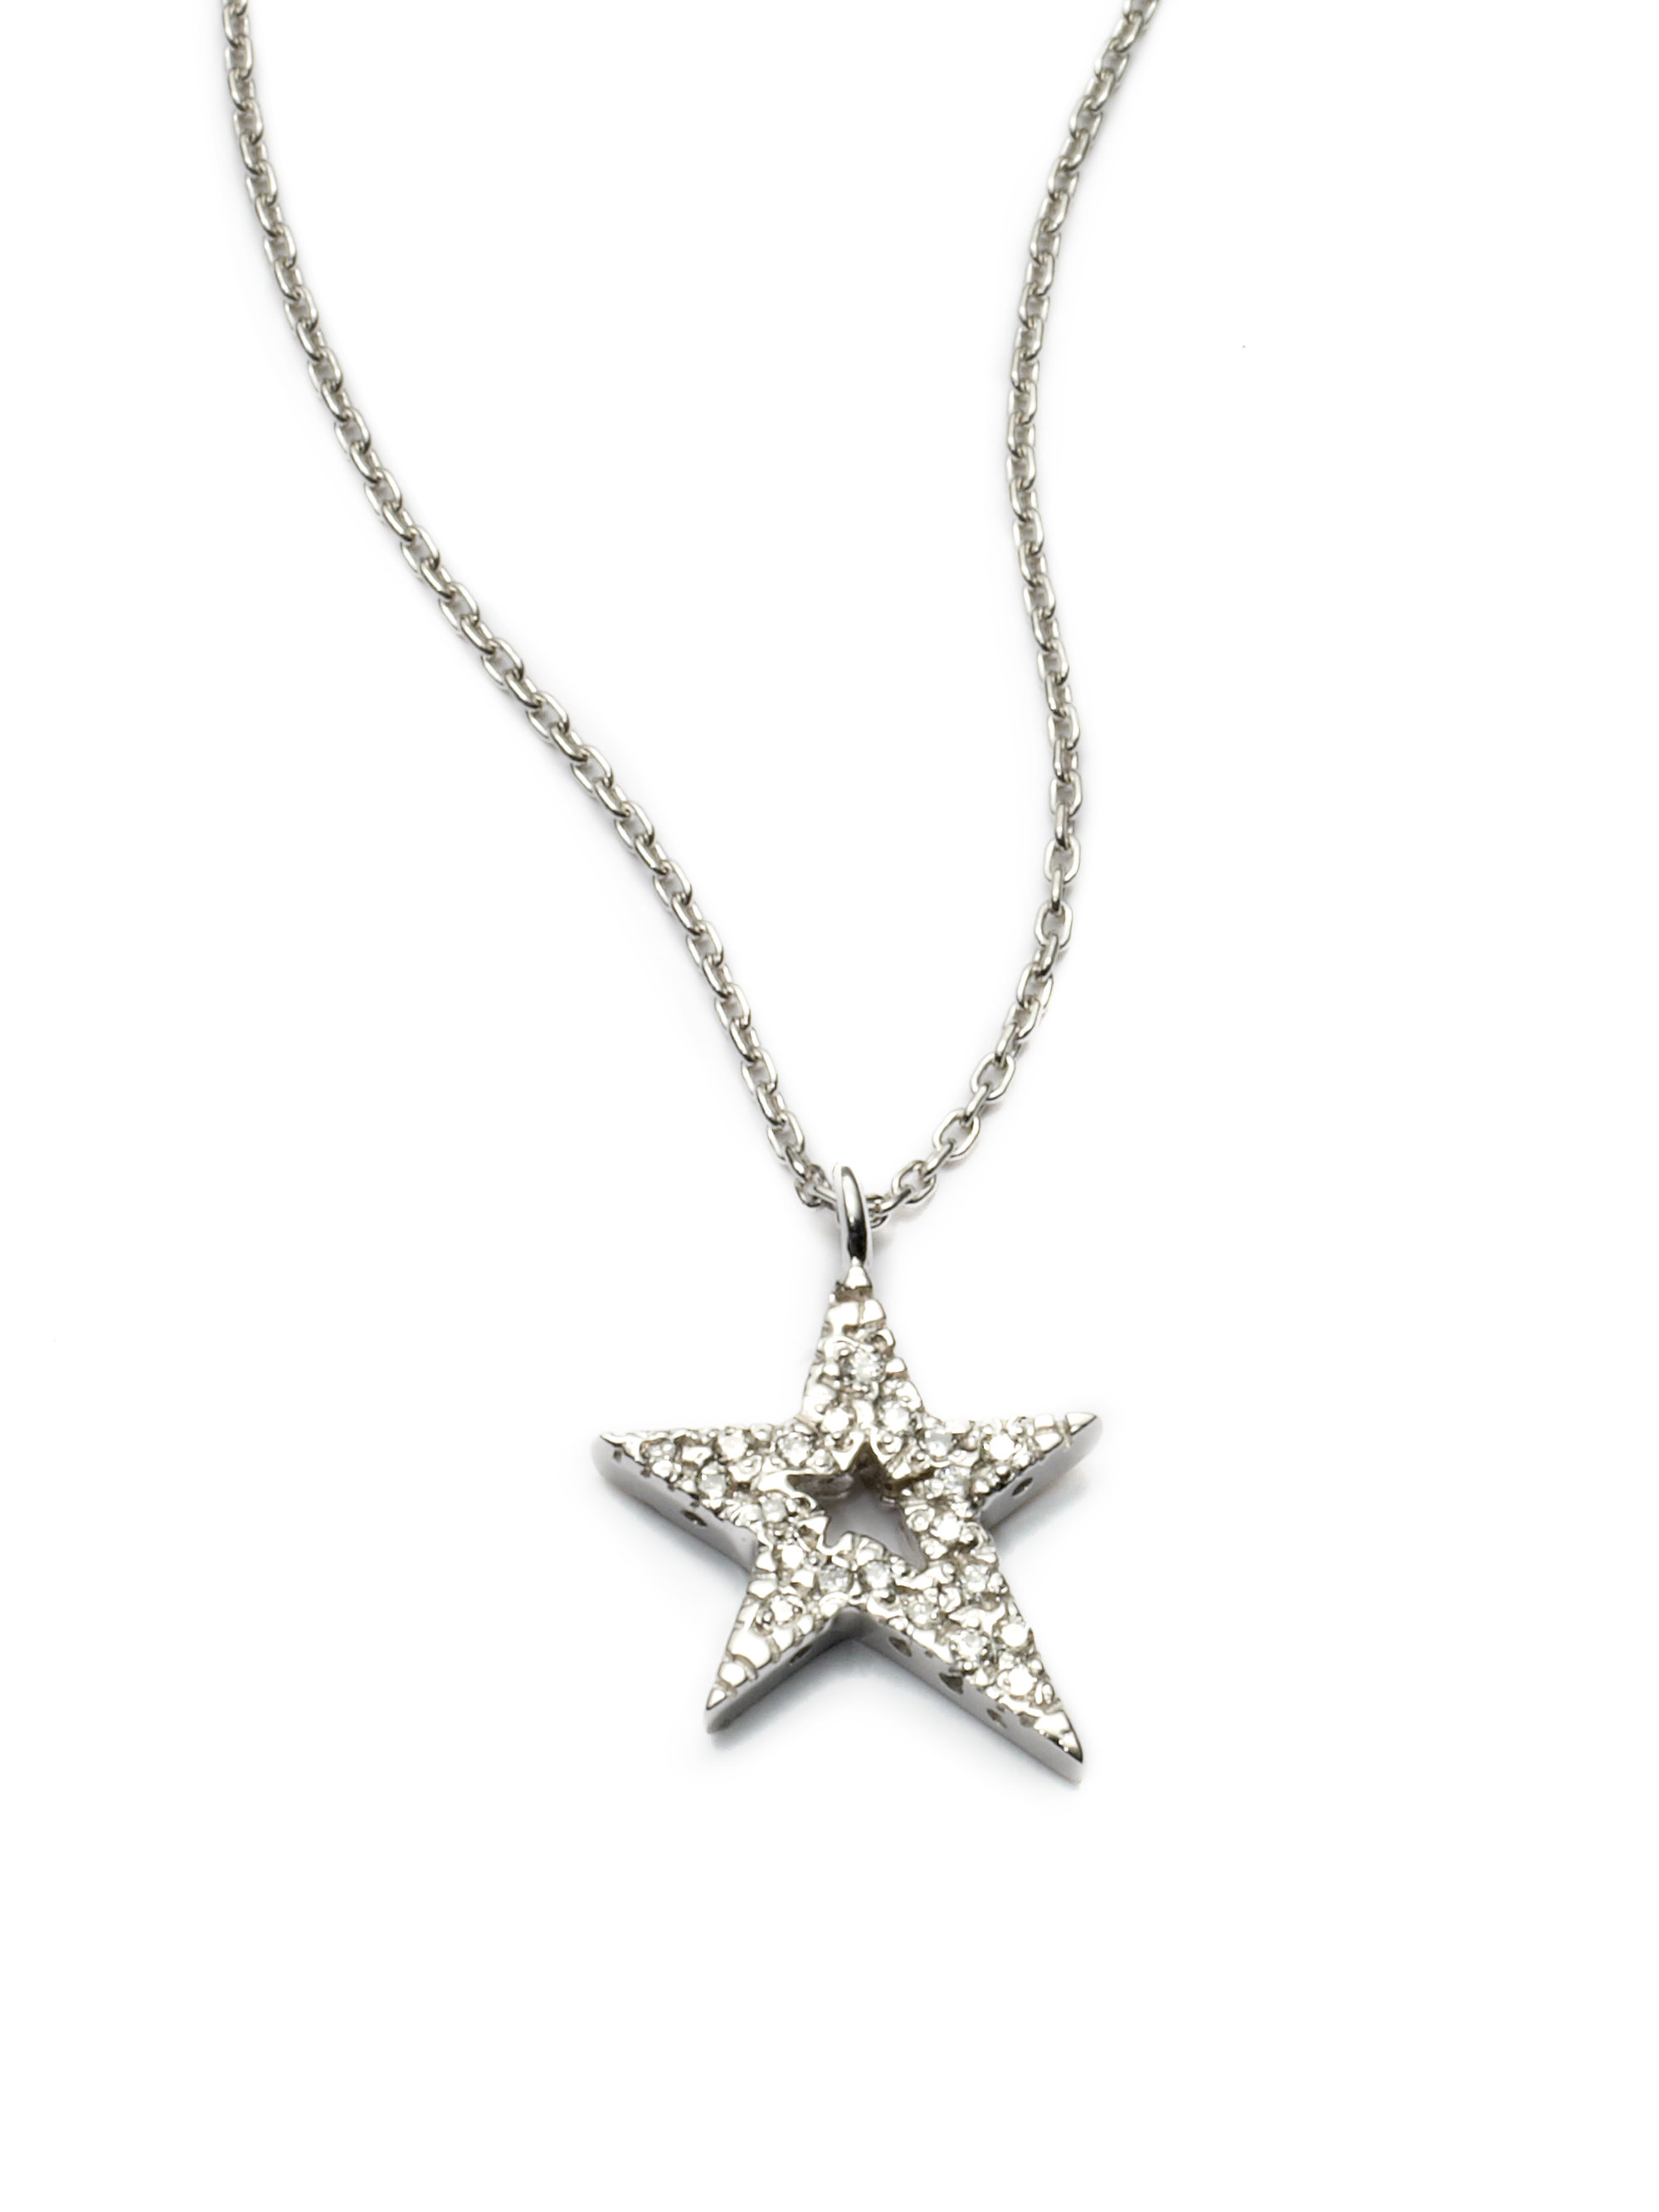 Kc designs Diamond Star Pendant Necklace in White